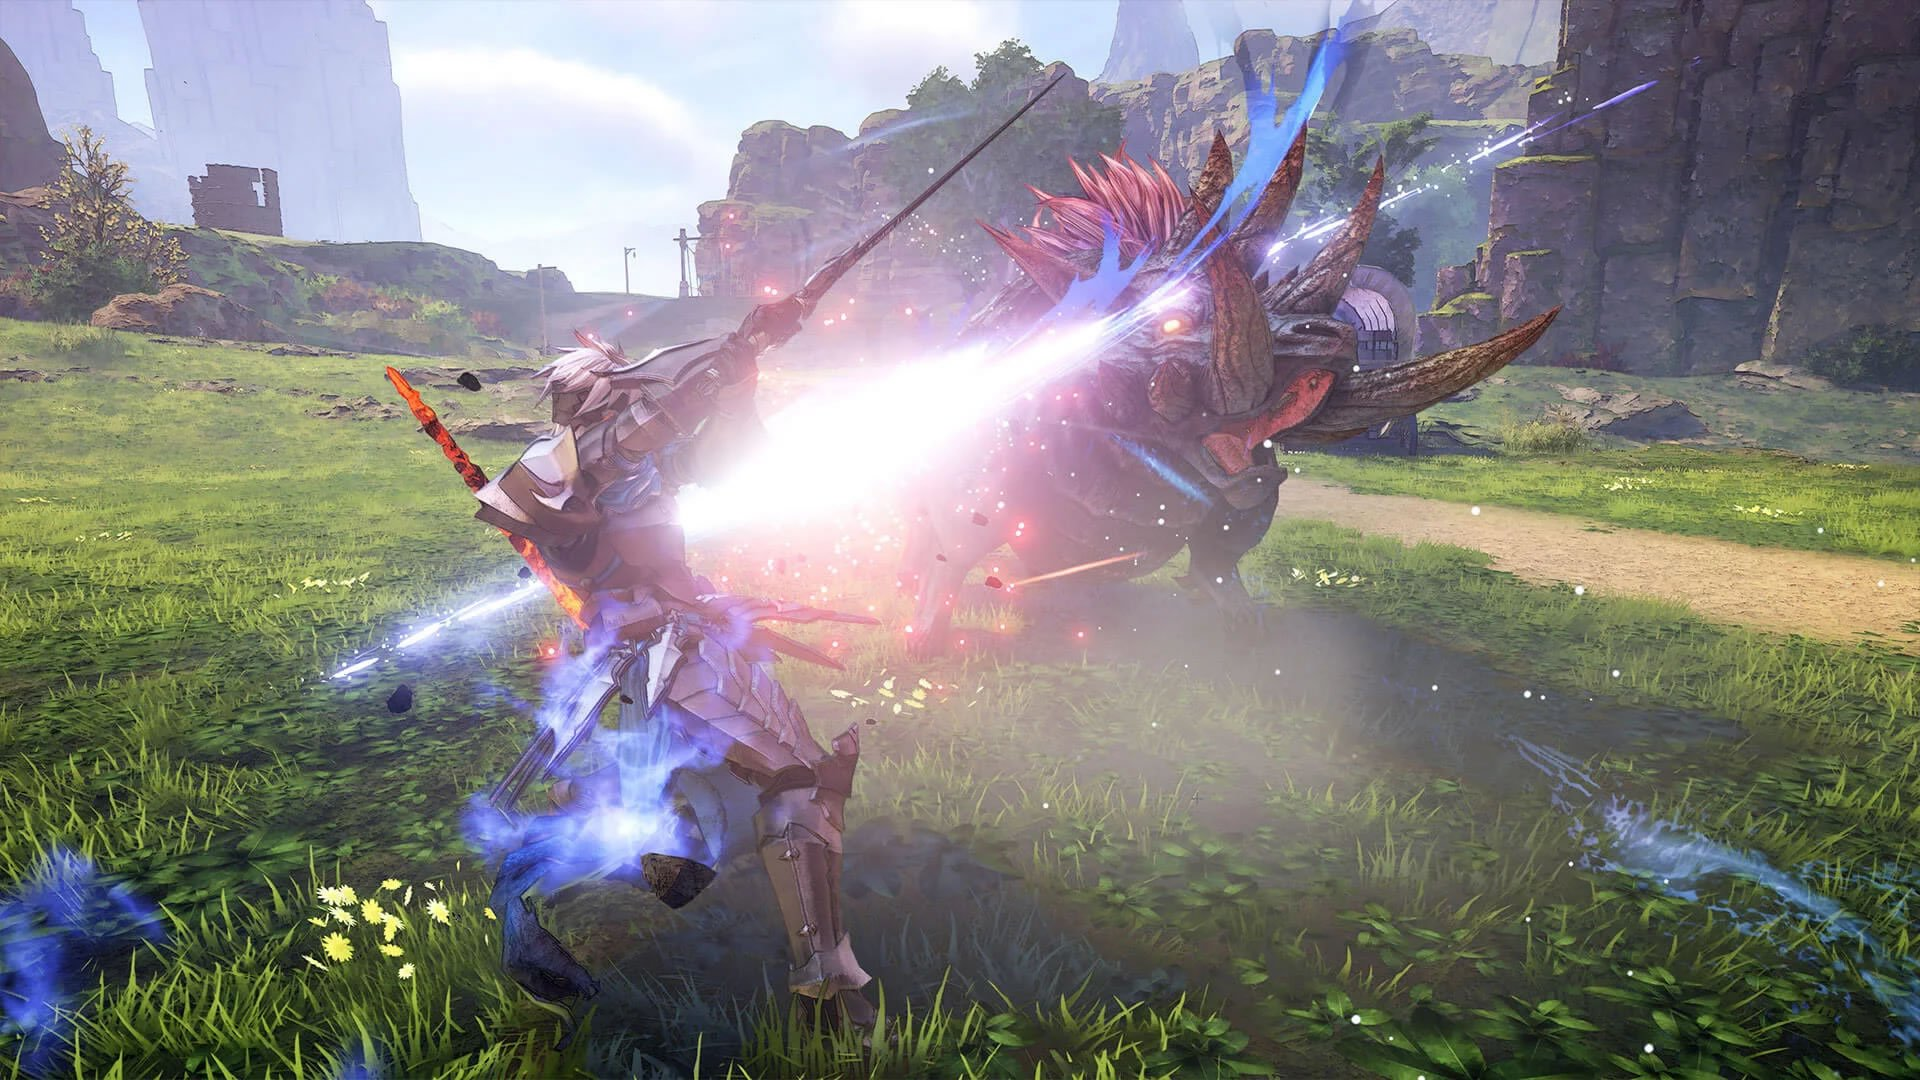 All Games Announced At E3 2020.Tales Of Arise Revealed To Be Coming In 2020 At Xbox E3 2019